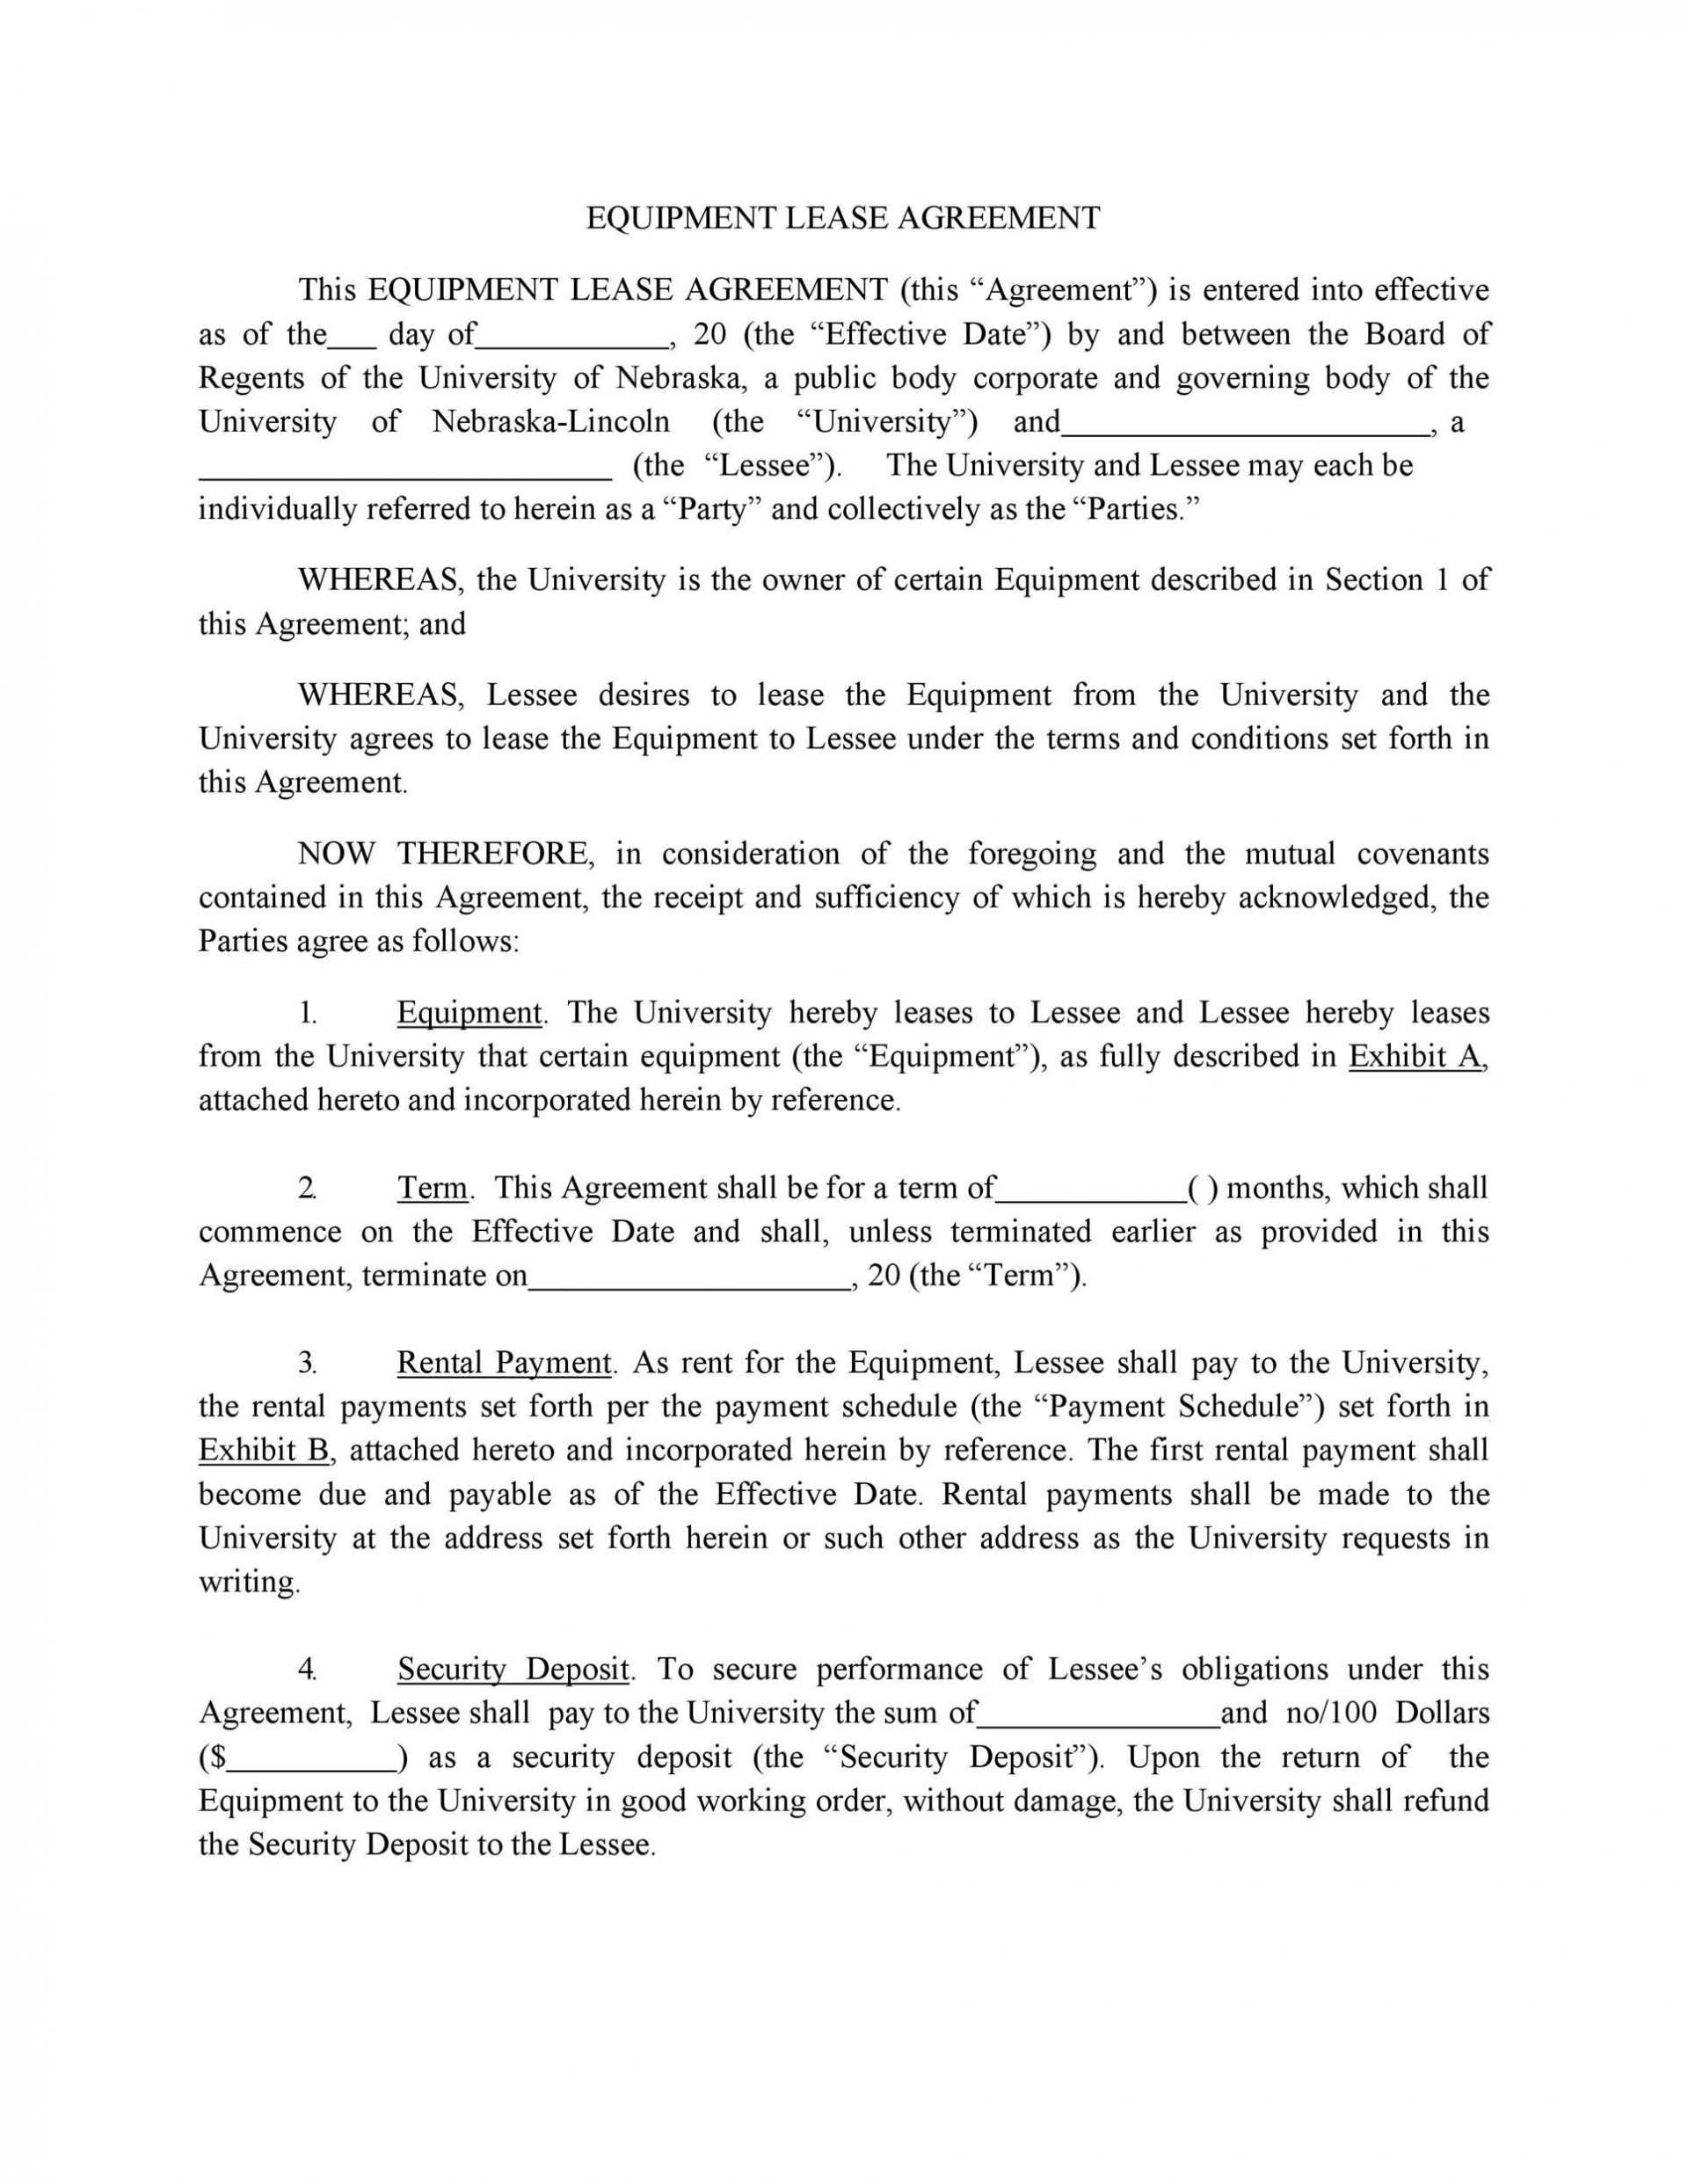 005 Wonderful Equipment Lease Contract Template Free Example  Agreement Word1920